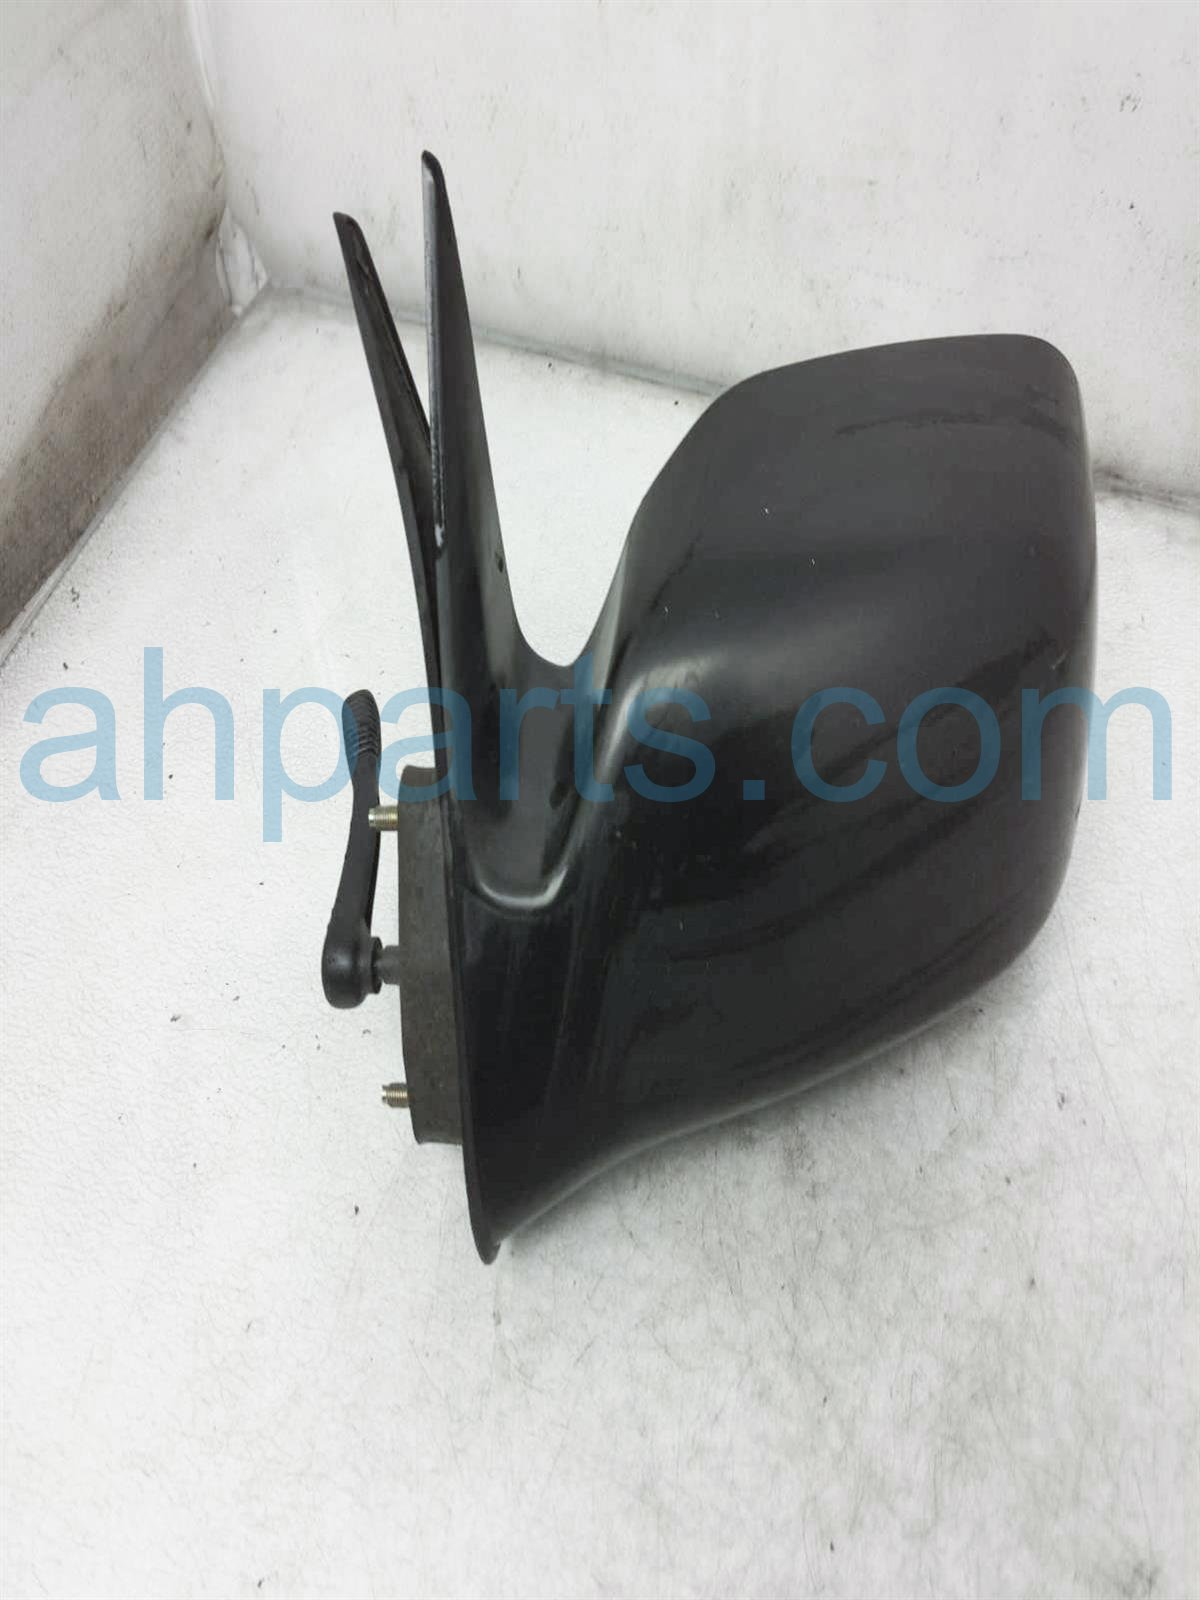 2000 Toyota Tacoma Rear Driver Side View Mirror   Black 87940 04901 Replacement